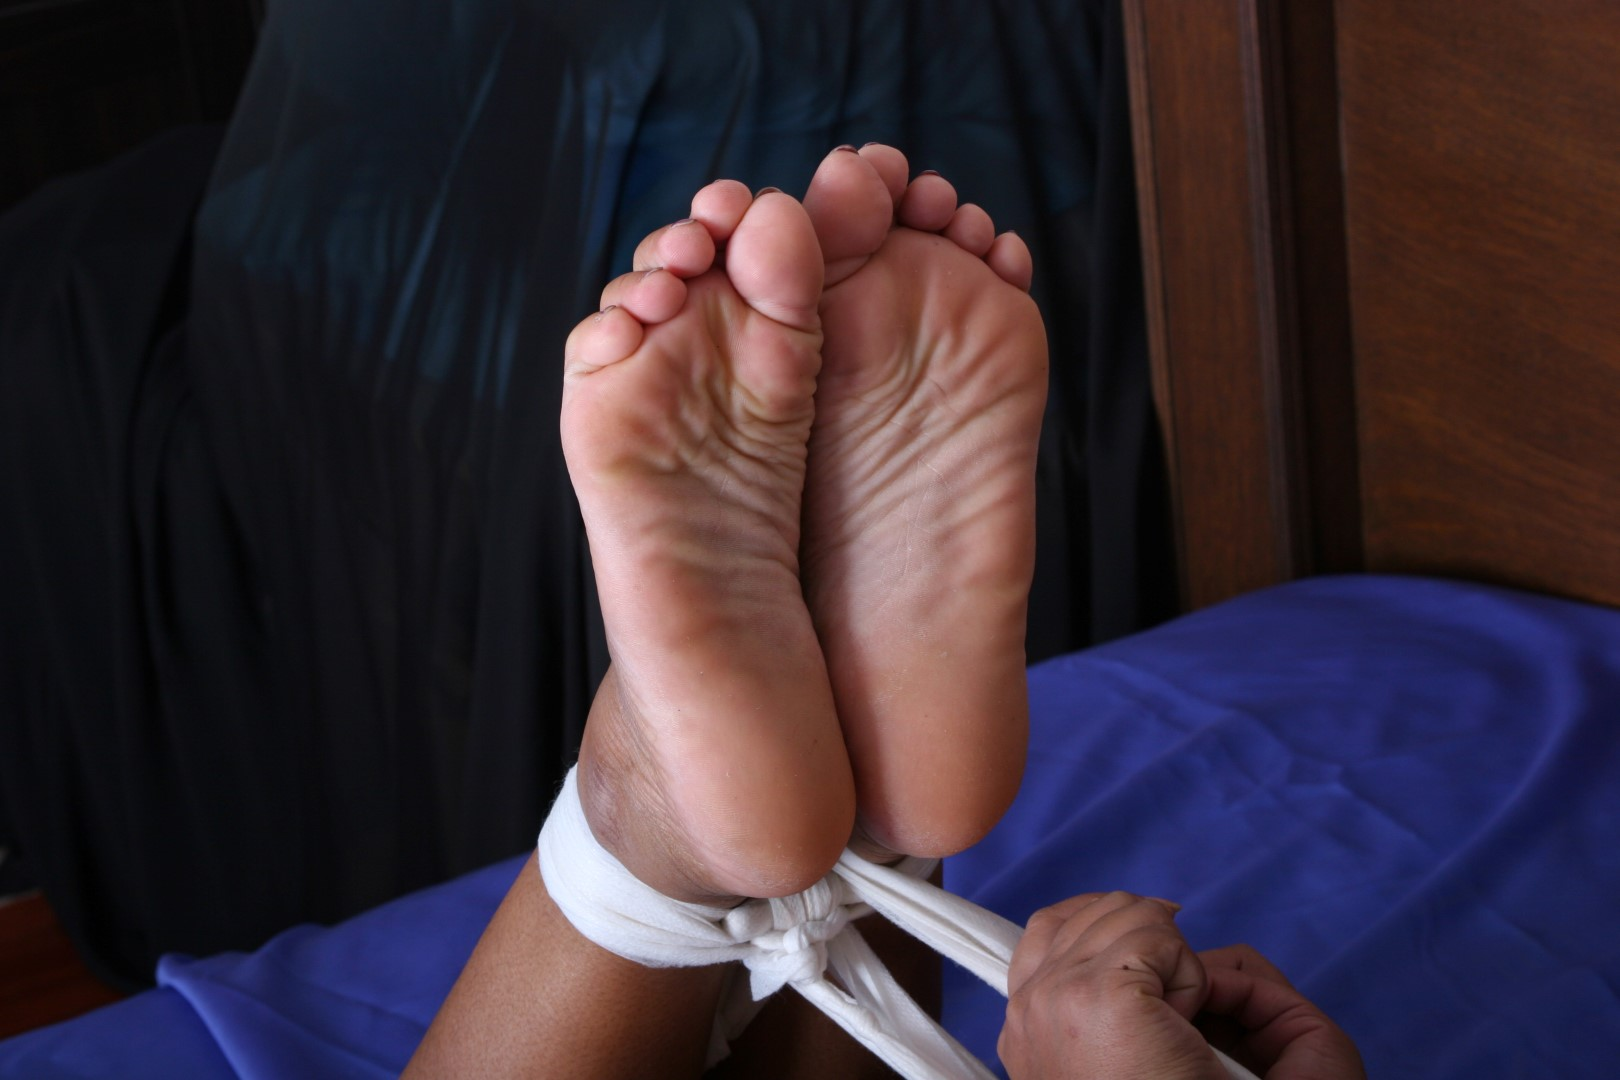 Asian Foot Worship Porn addicted 2 feet | foot fetish babes and dirty feet punished